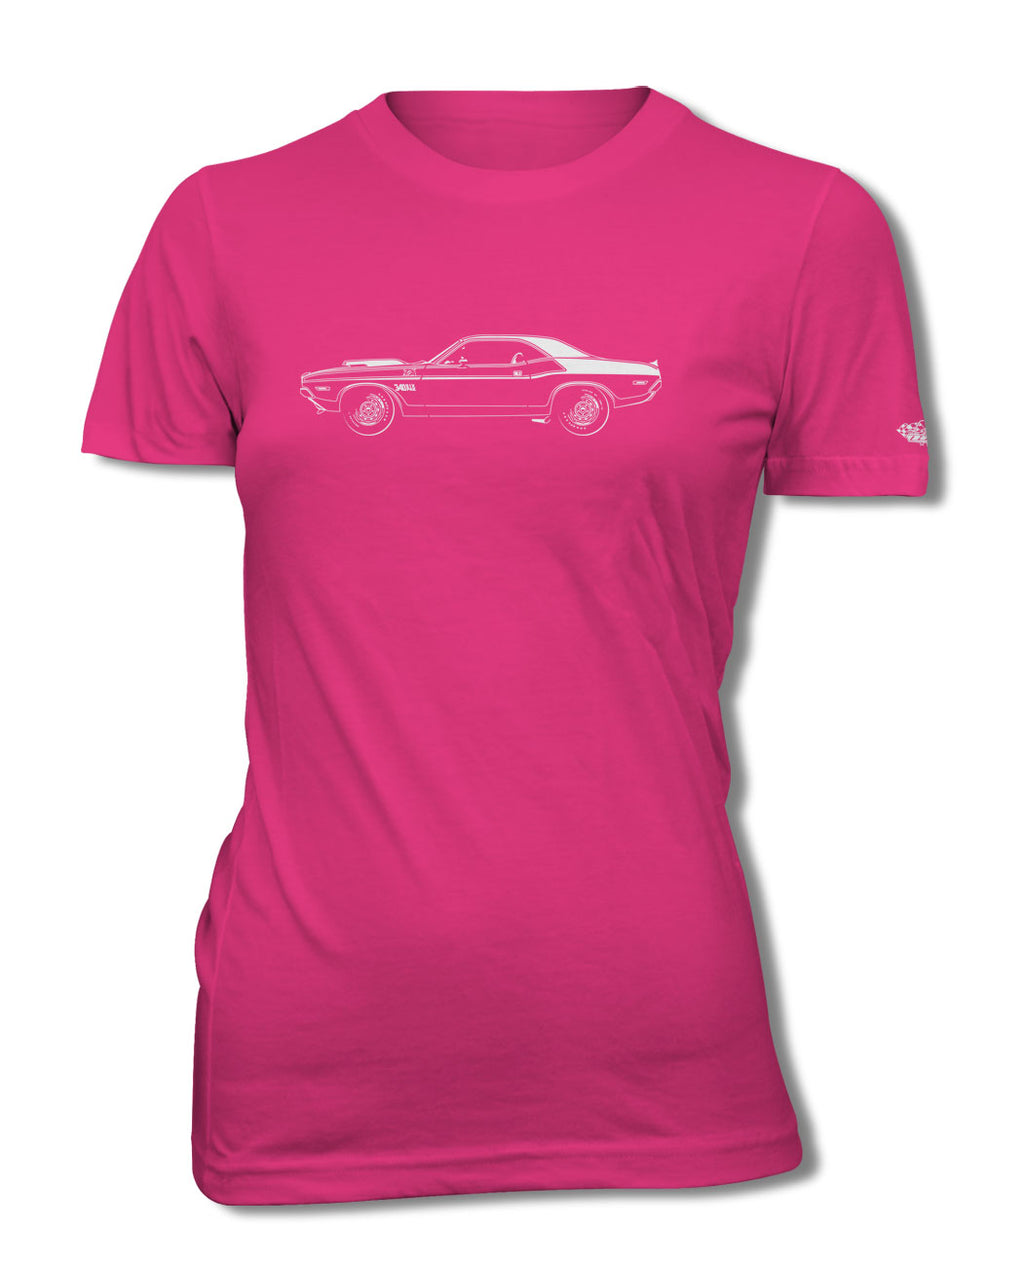 1970 Dodge Challenger TA 340 Coupe T-Shirt - Women - Side View